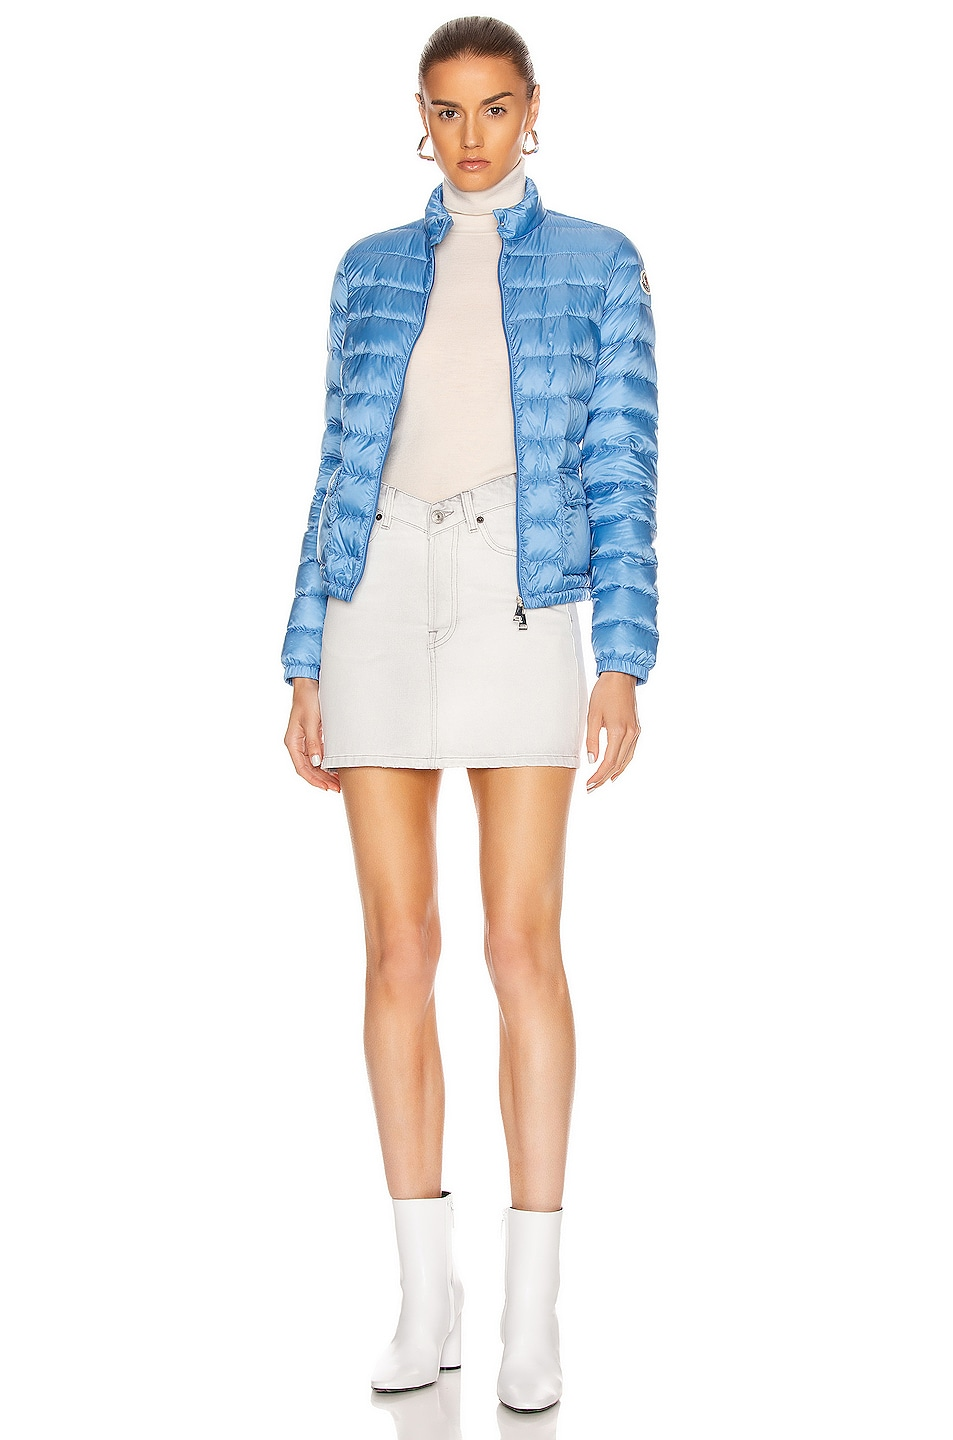 Image 6 of Moncler Lans Giubbotto Jacket in Royal Blue